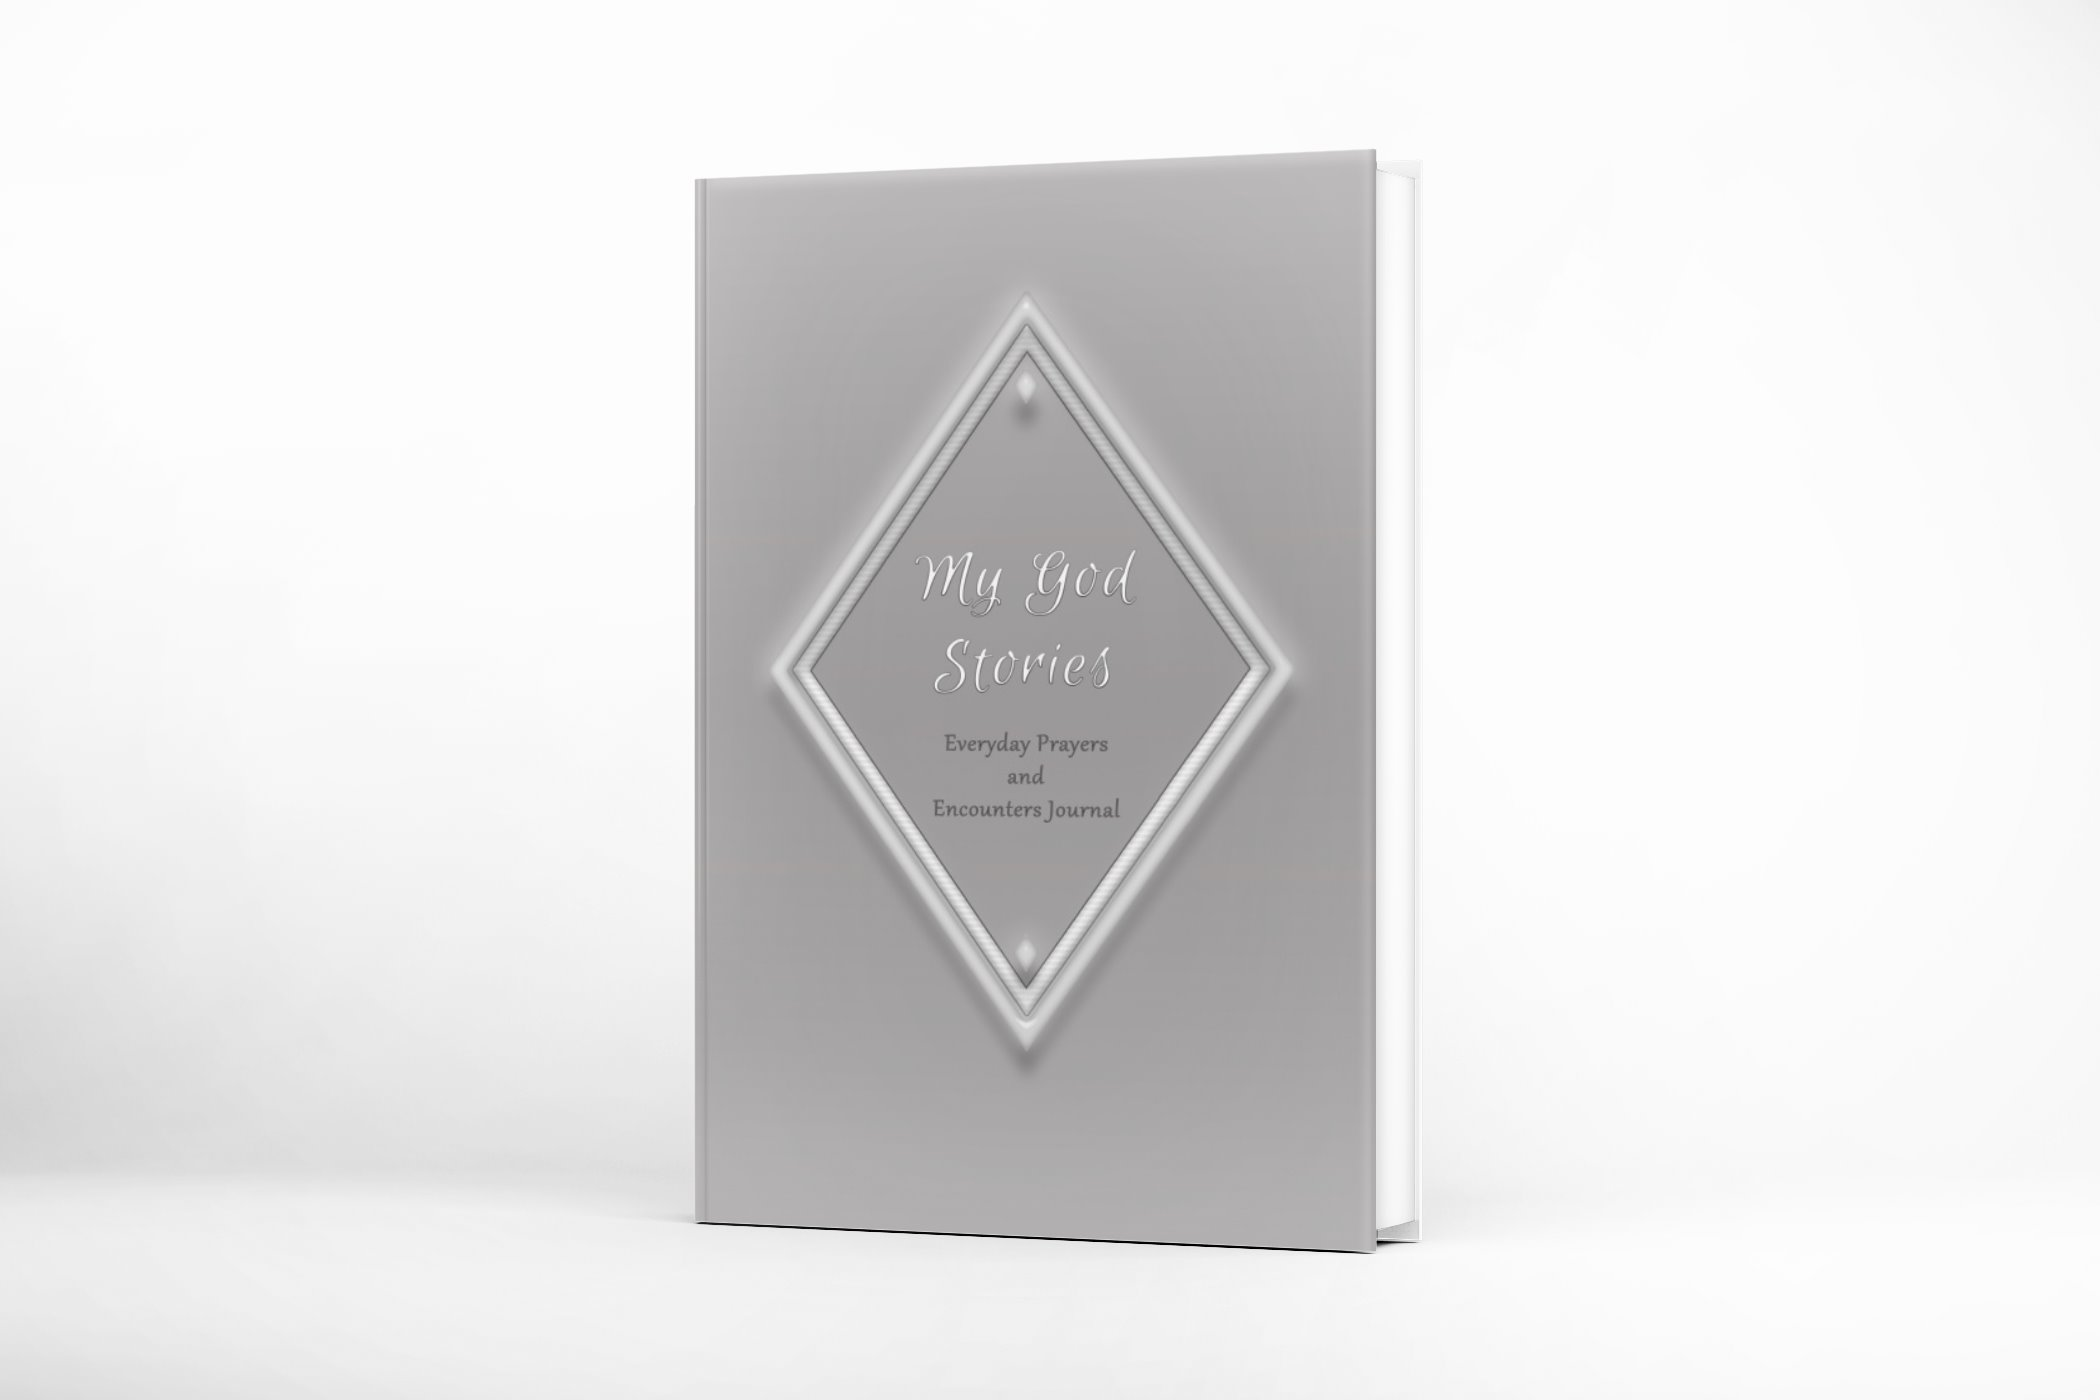 3D Book Cover Design Mockup Generator gr